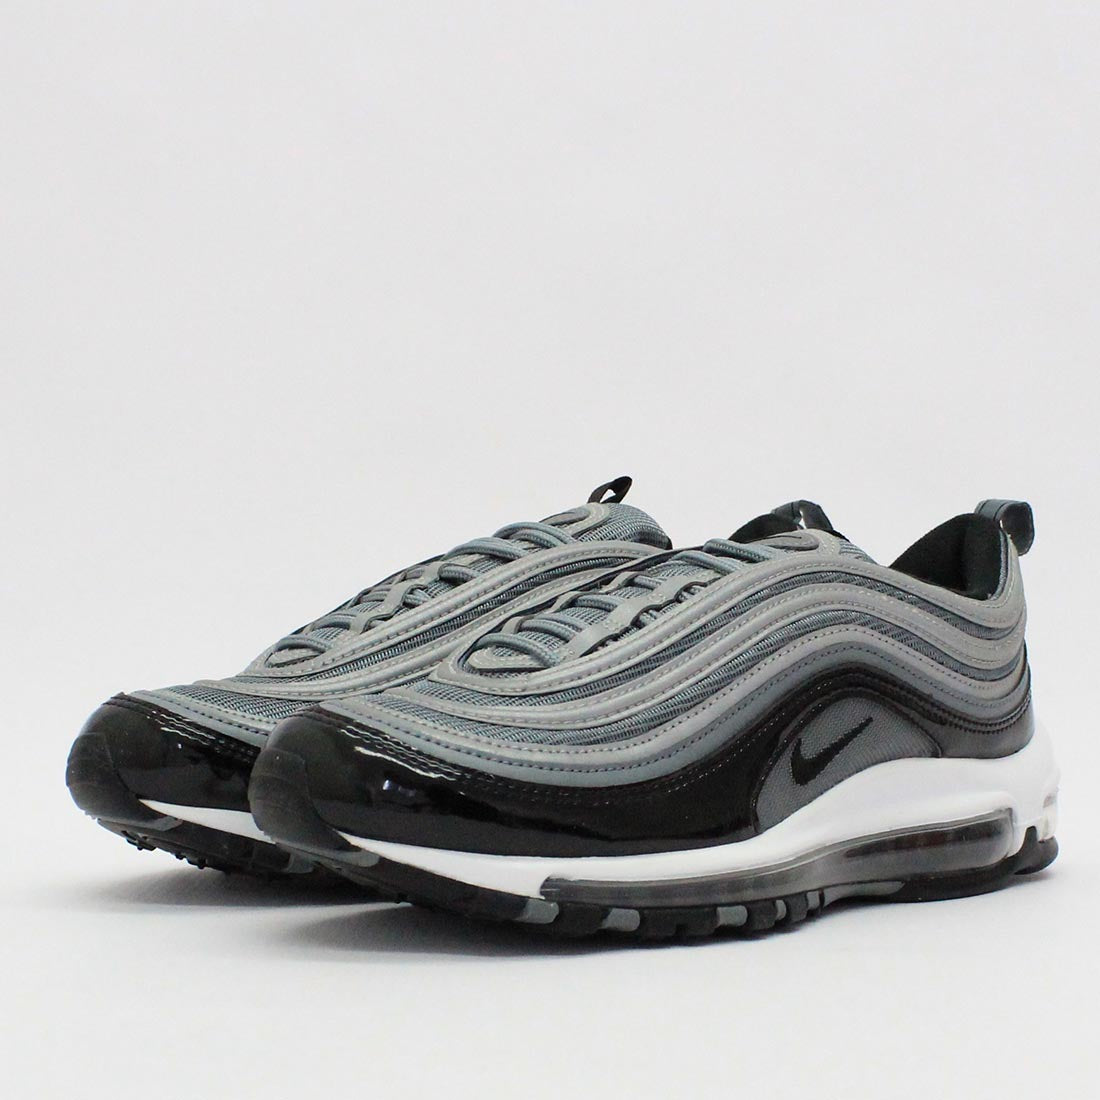 australia nike air max 97 cool grey d511b c2373